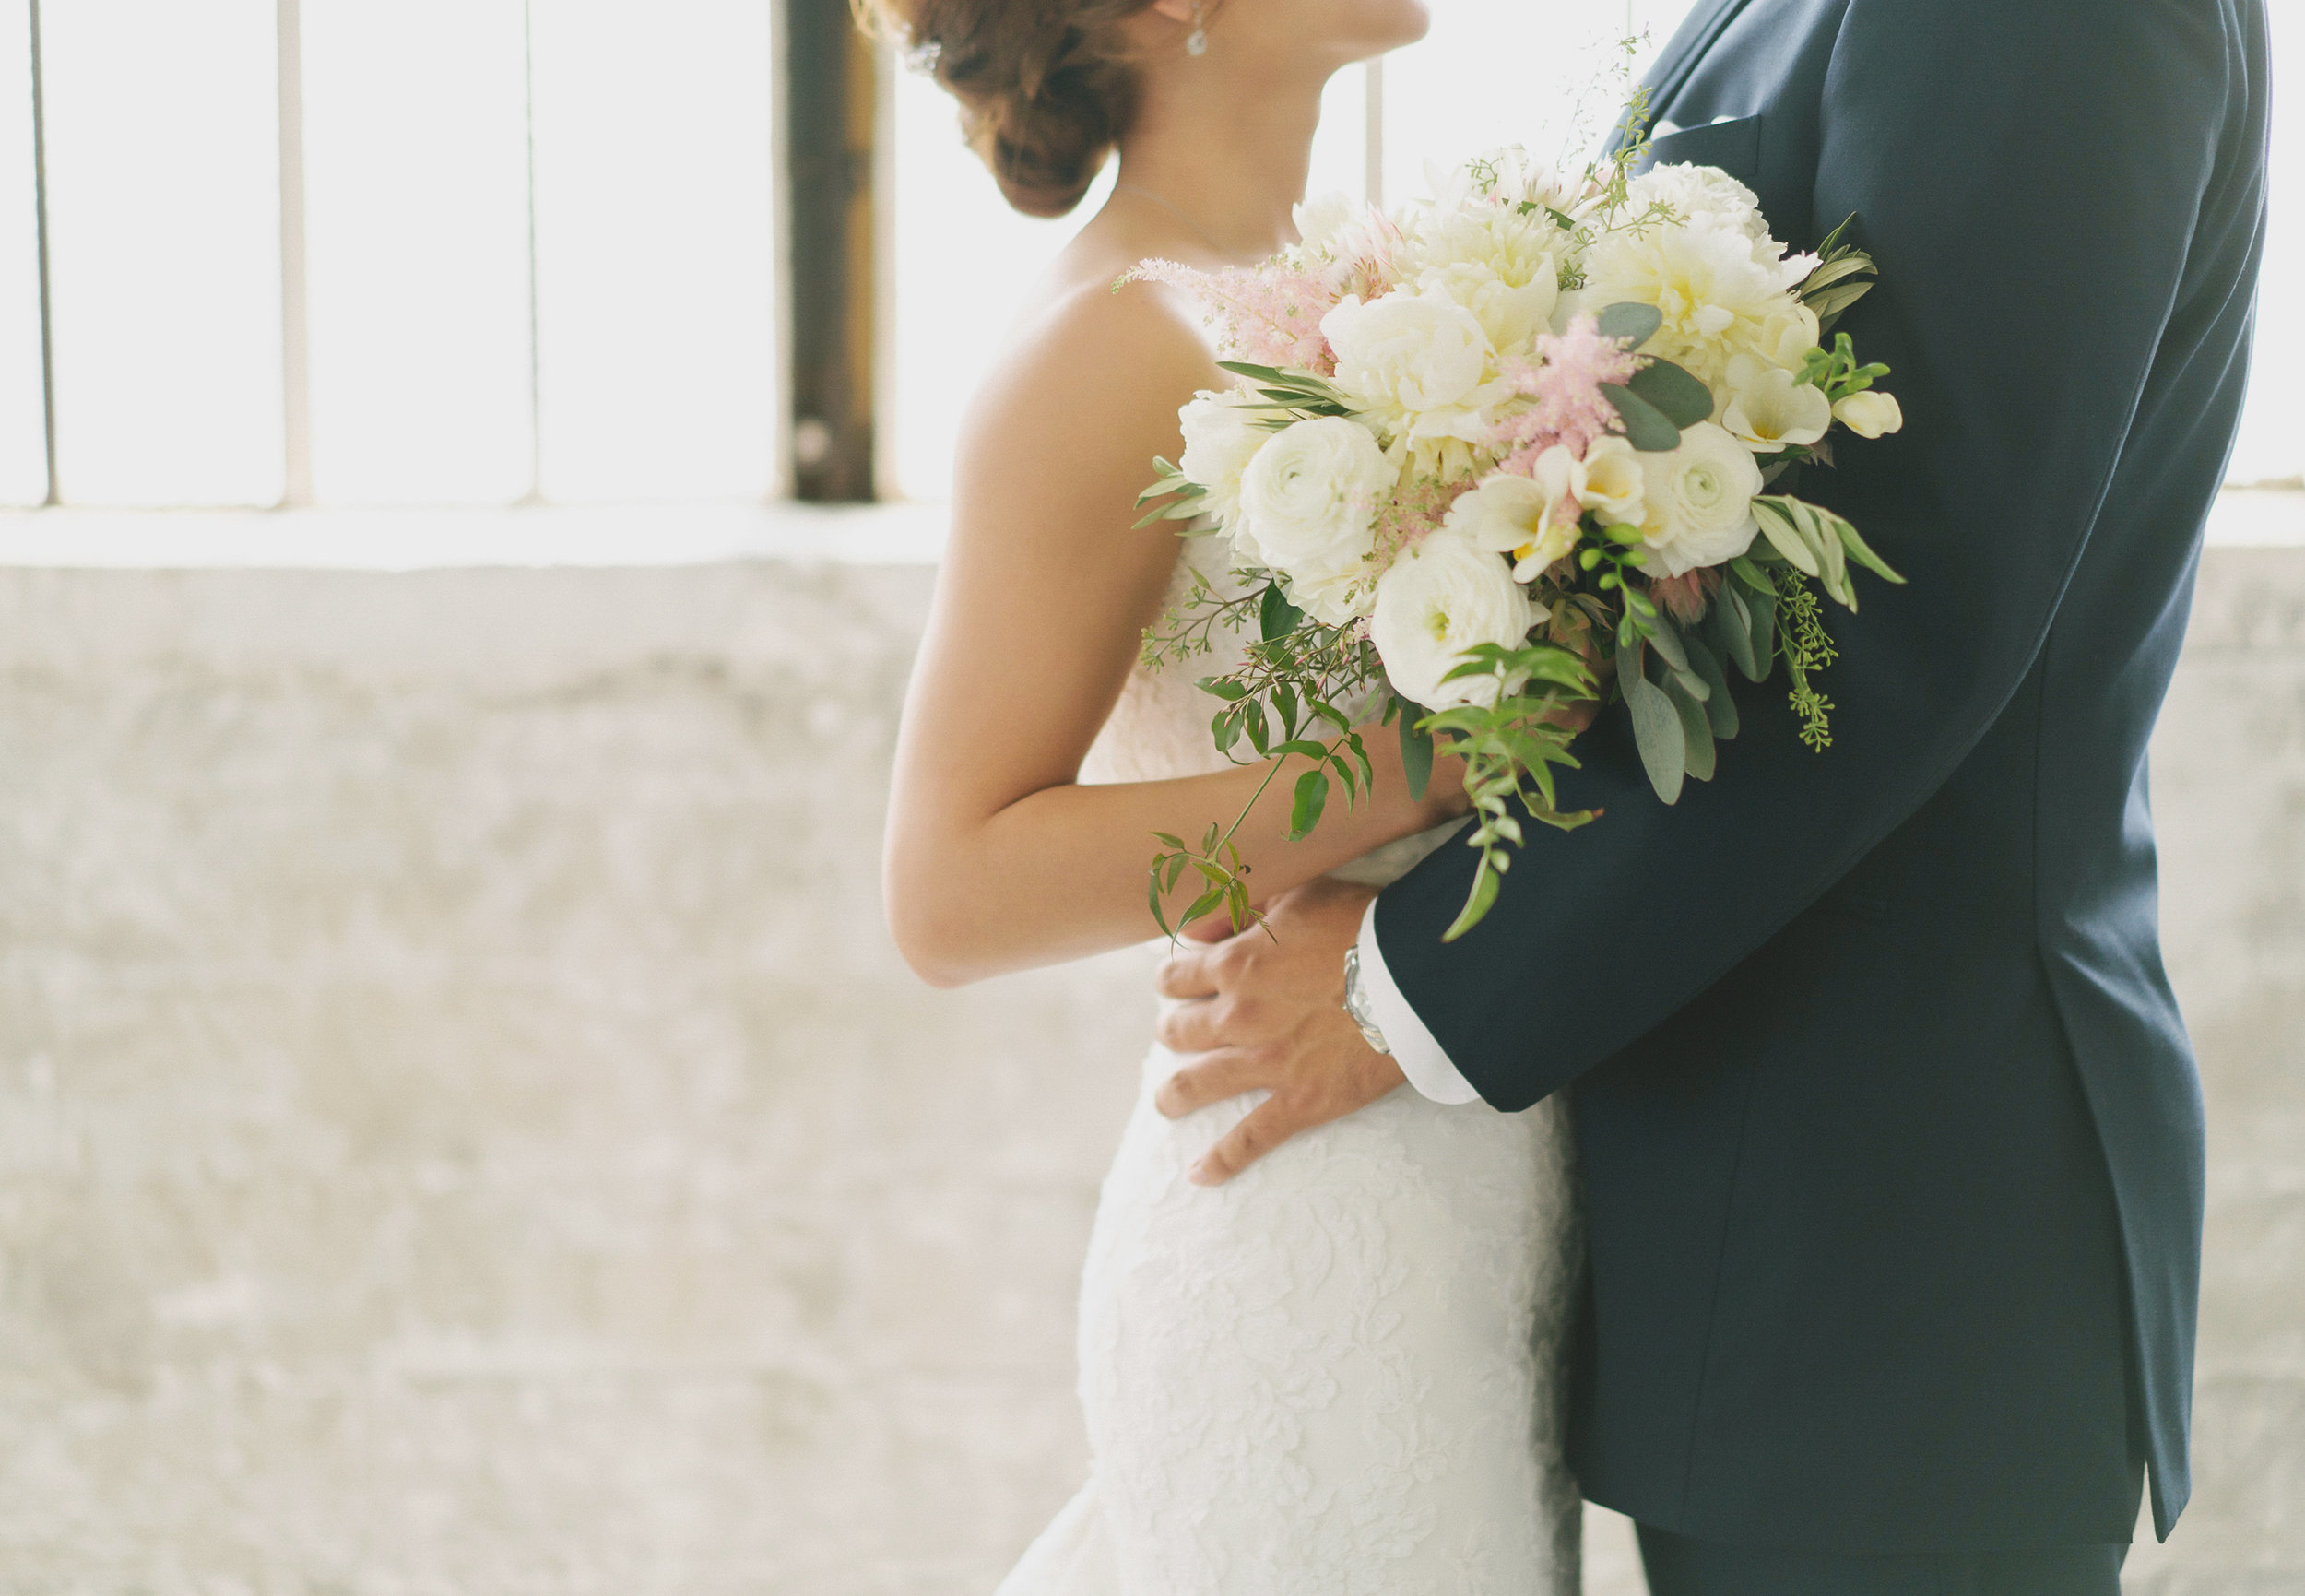 The bride's bouquet was soft with white Dahlias, Rancuculus, Blush Astilbes, and fragrant Fresias . Over flowing with Jasmine vines.